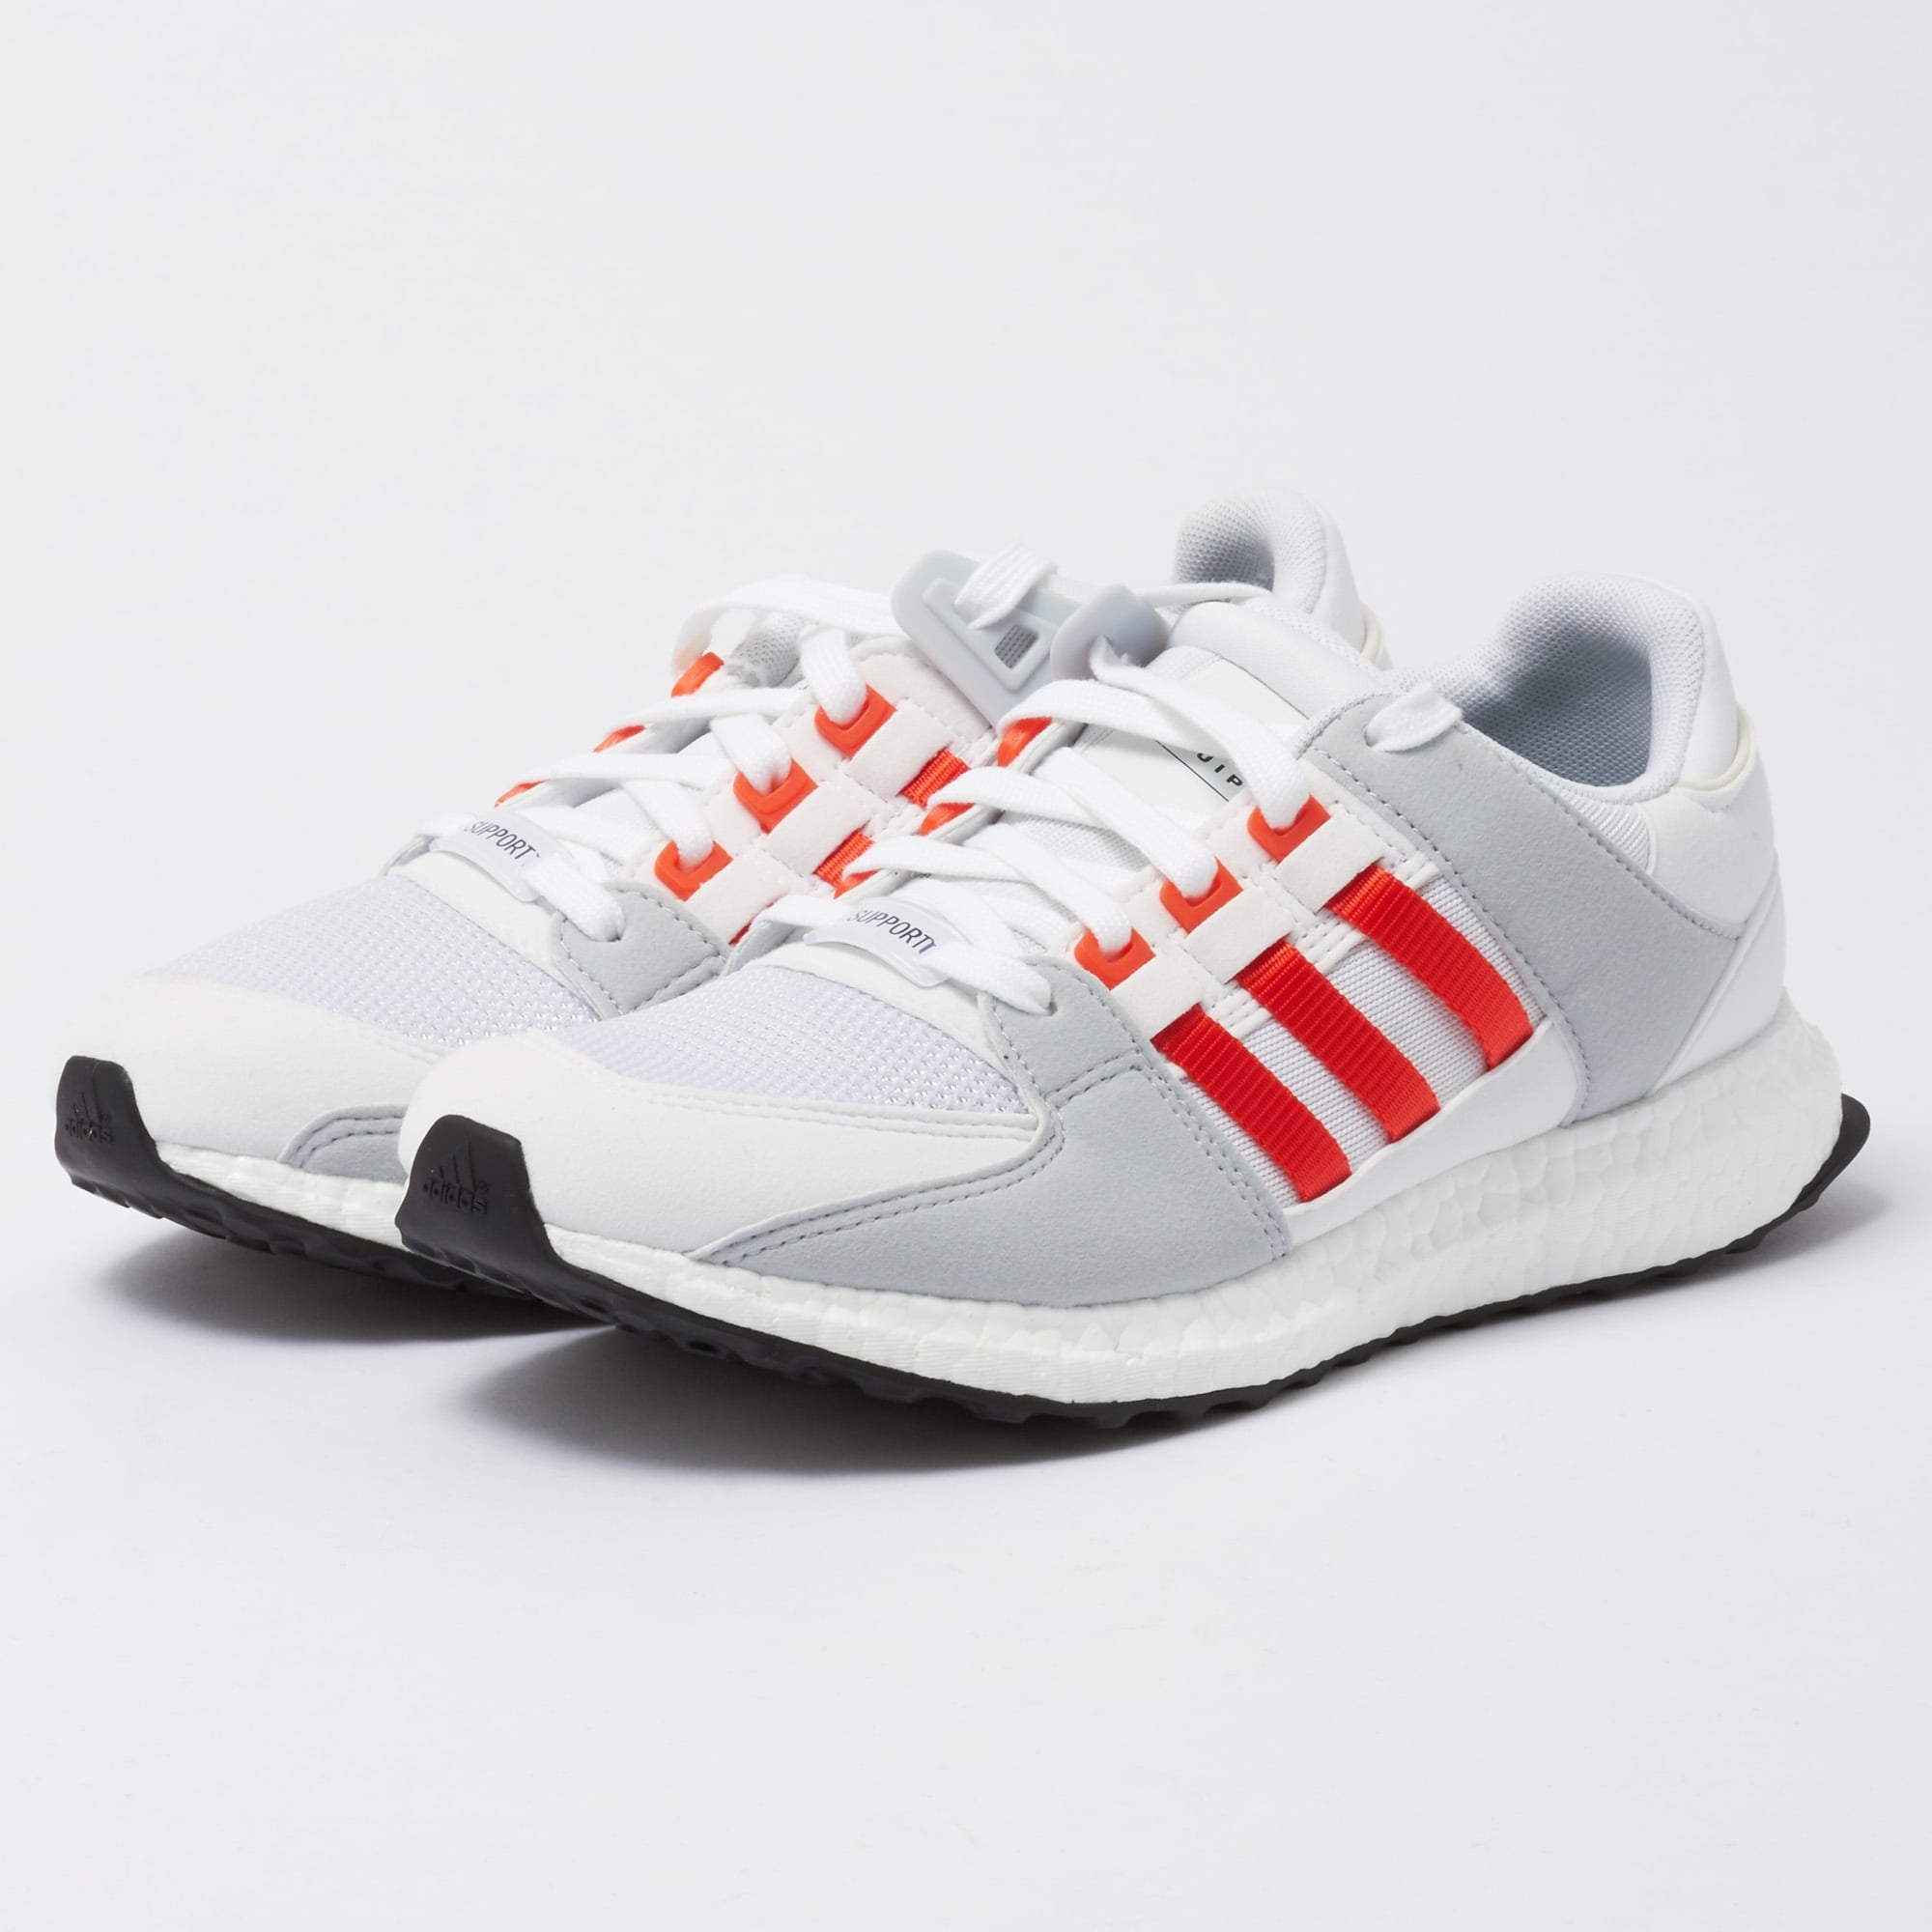 new style 25c66 b188a adidas Originals EQT Support Ultra - Running White & Bold Orange